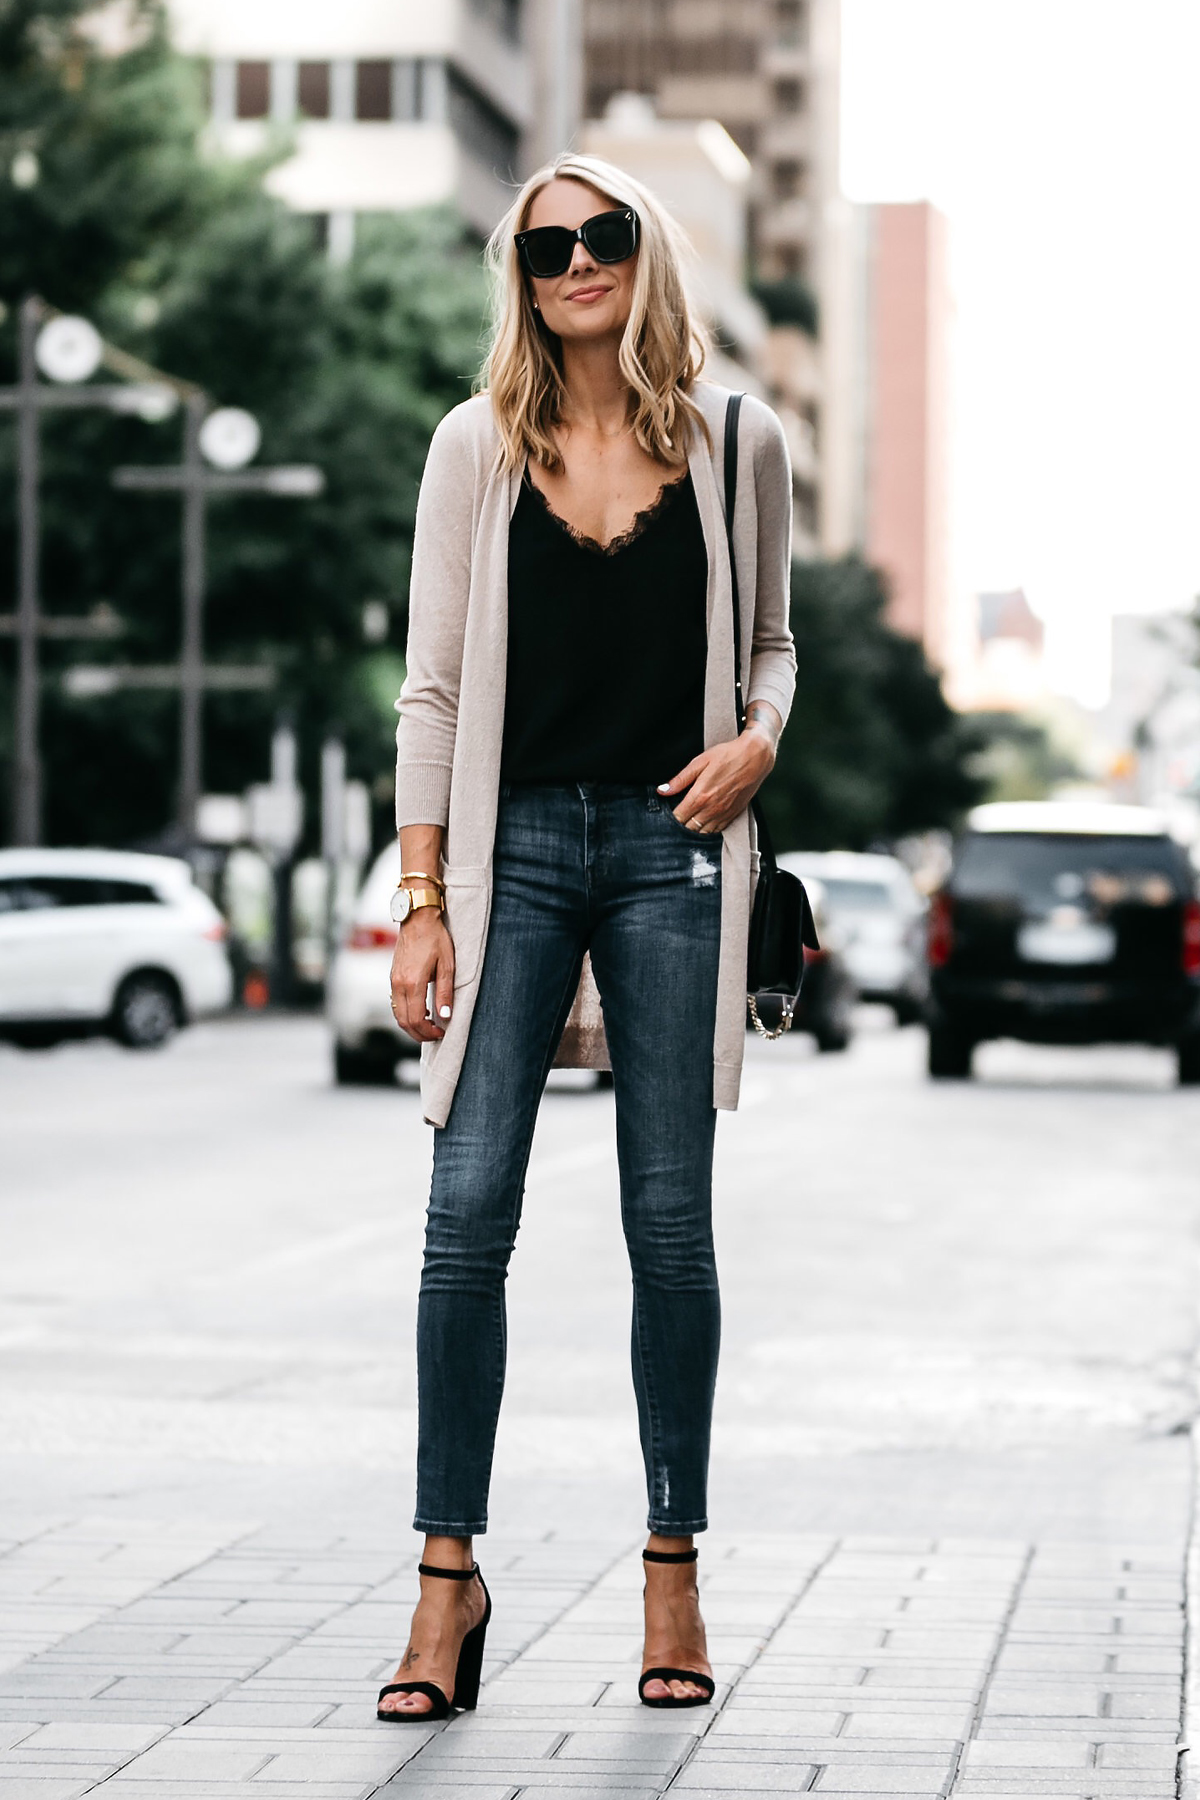 HOW TO STYLE A LONG TAN CARDIGAN THIS FALL | Fashion Jackson